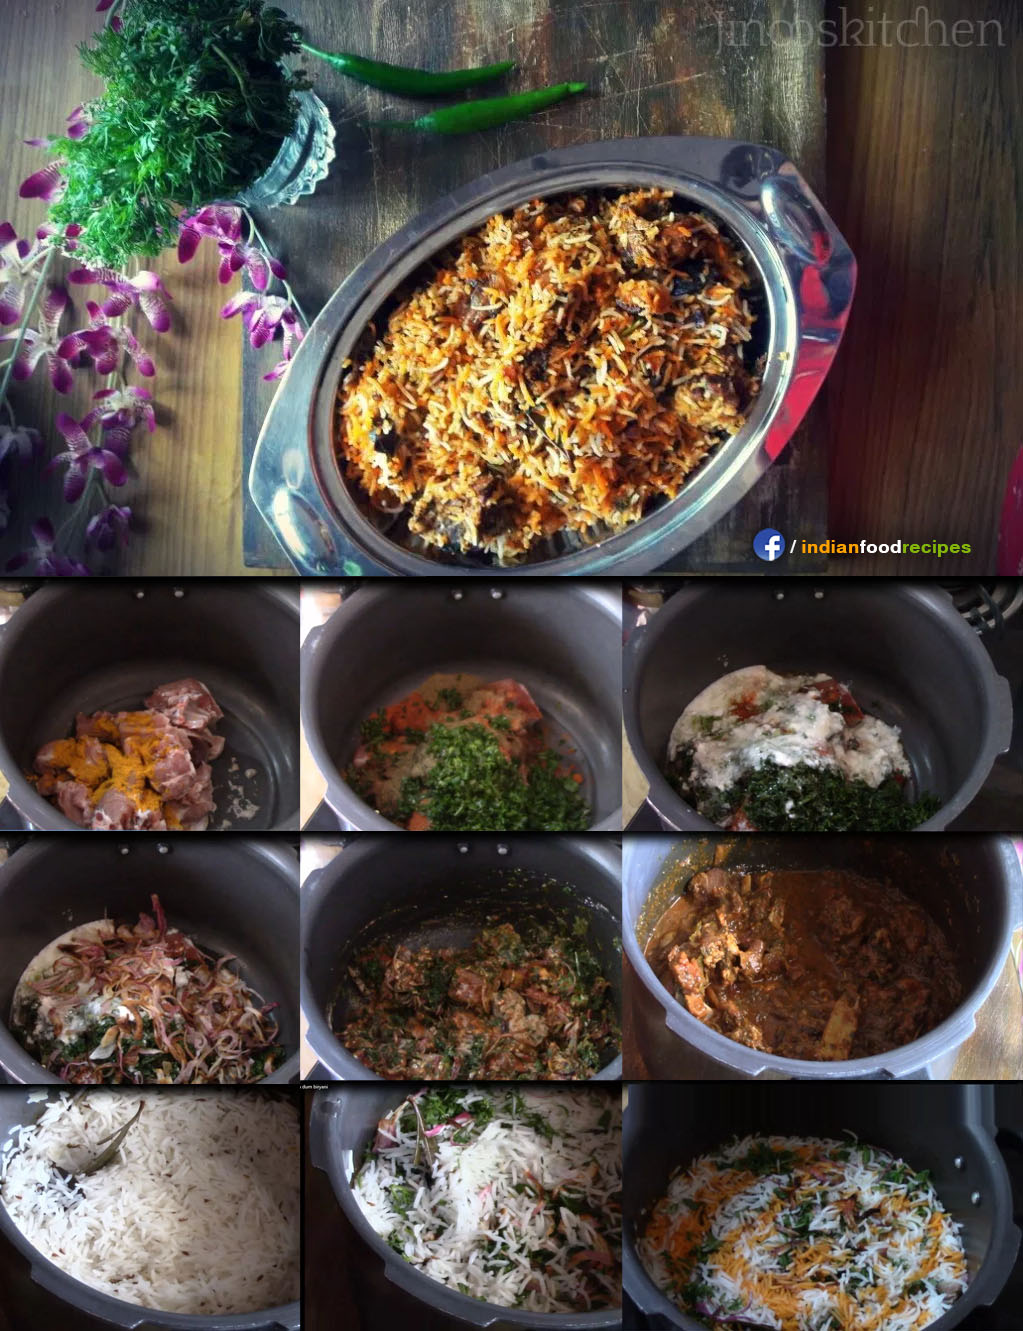 Mutton Dum Biryani recipe step by step